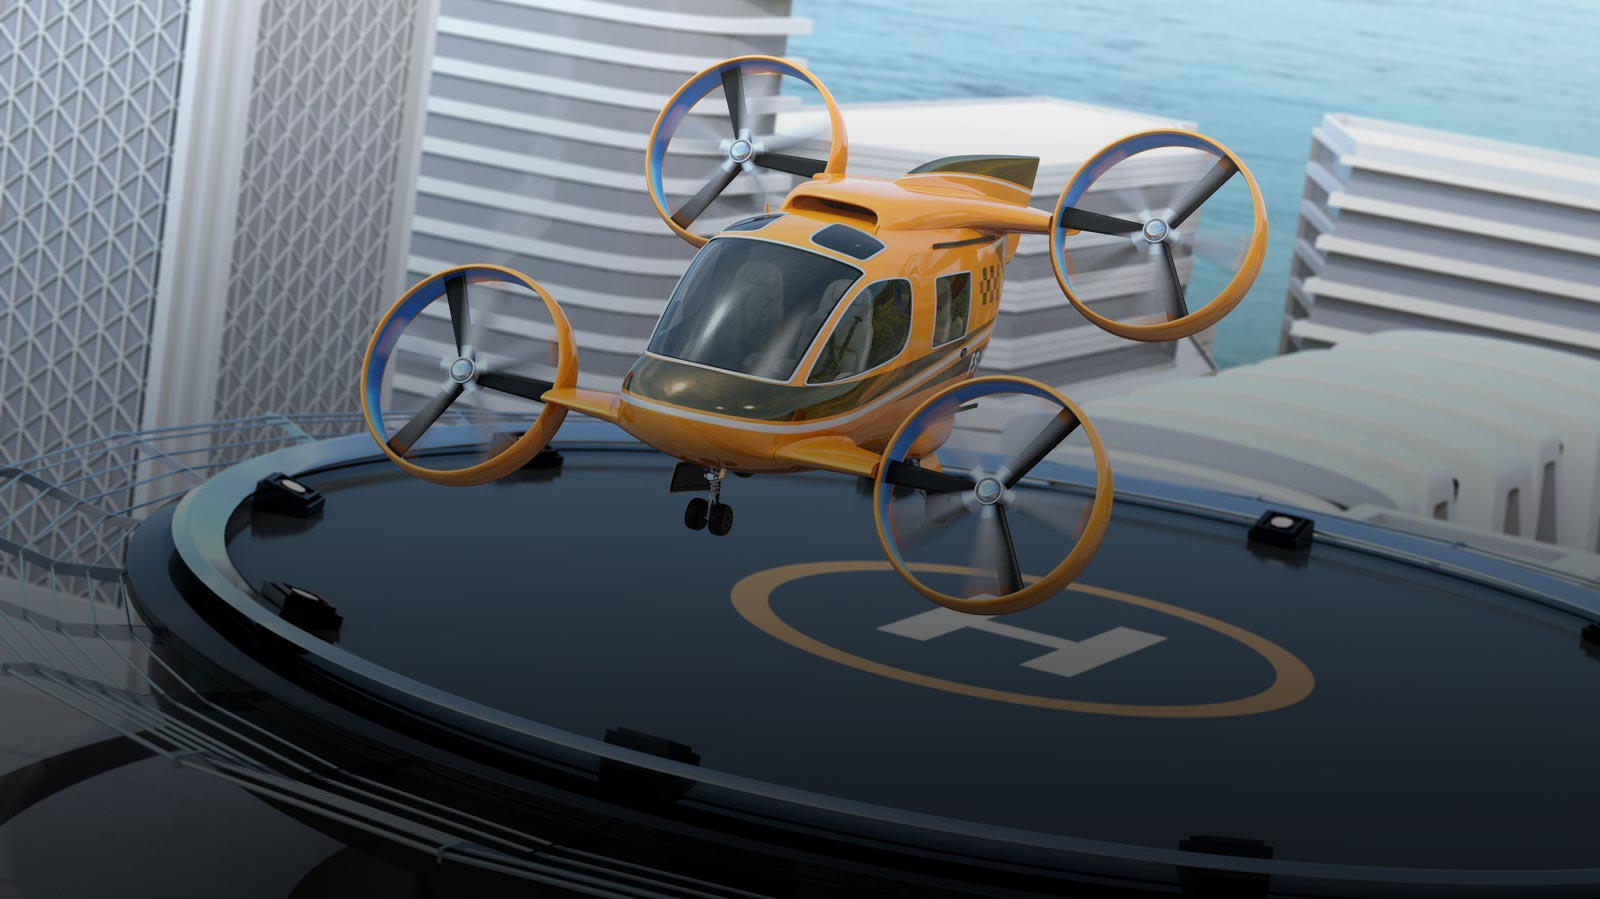 https://iqonboard.com/wp/wp-content/uploads/2020/03/urban-air-mobility-1.jpg